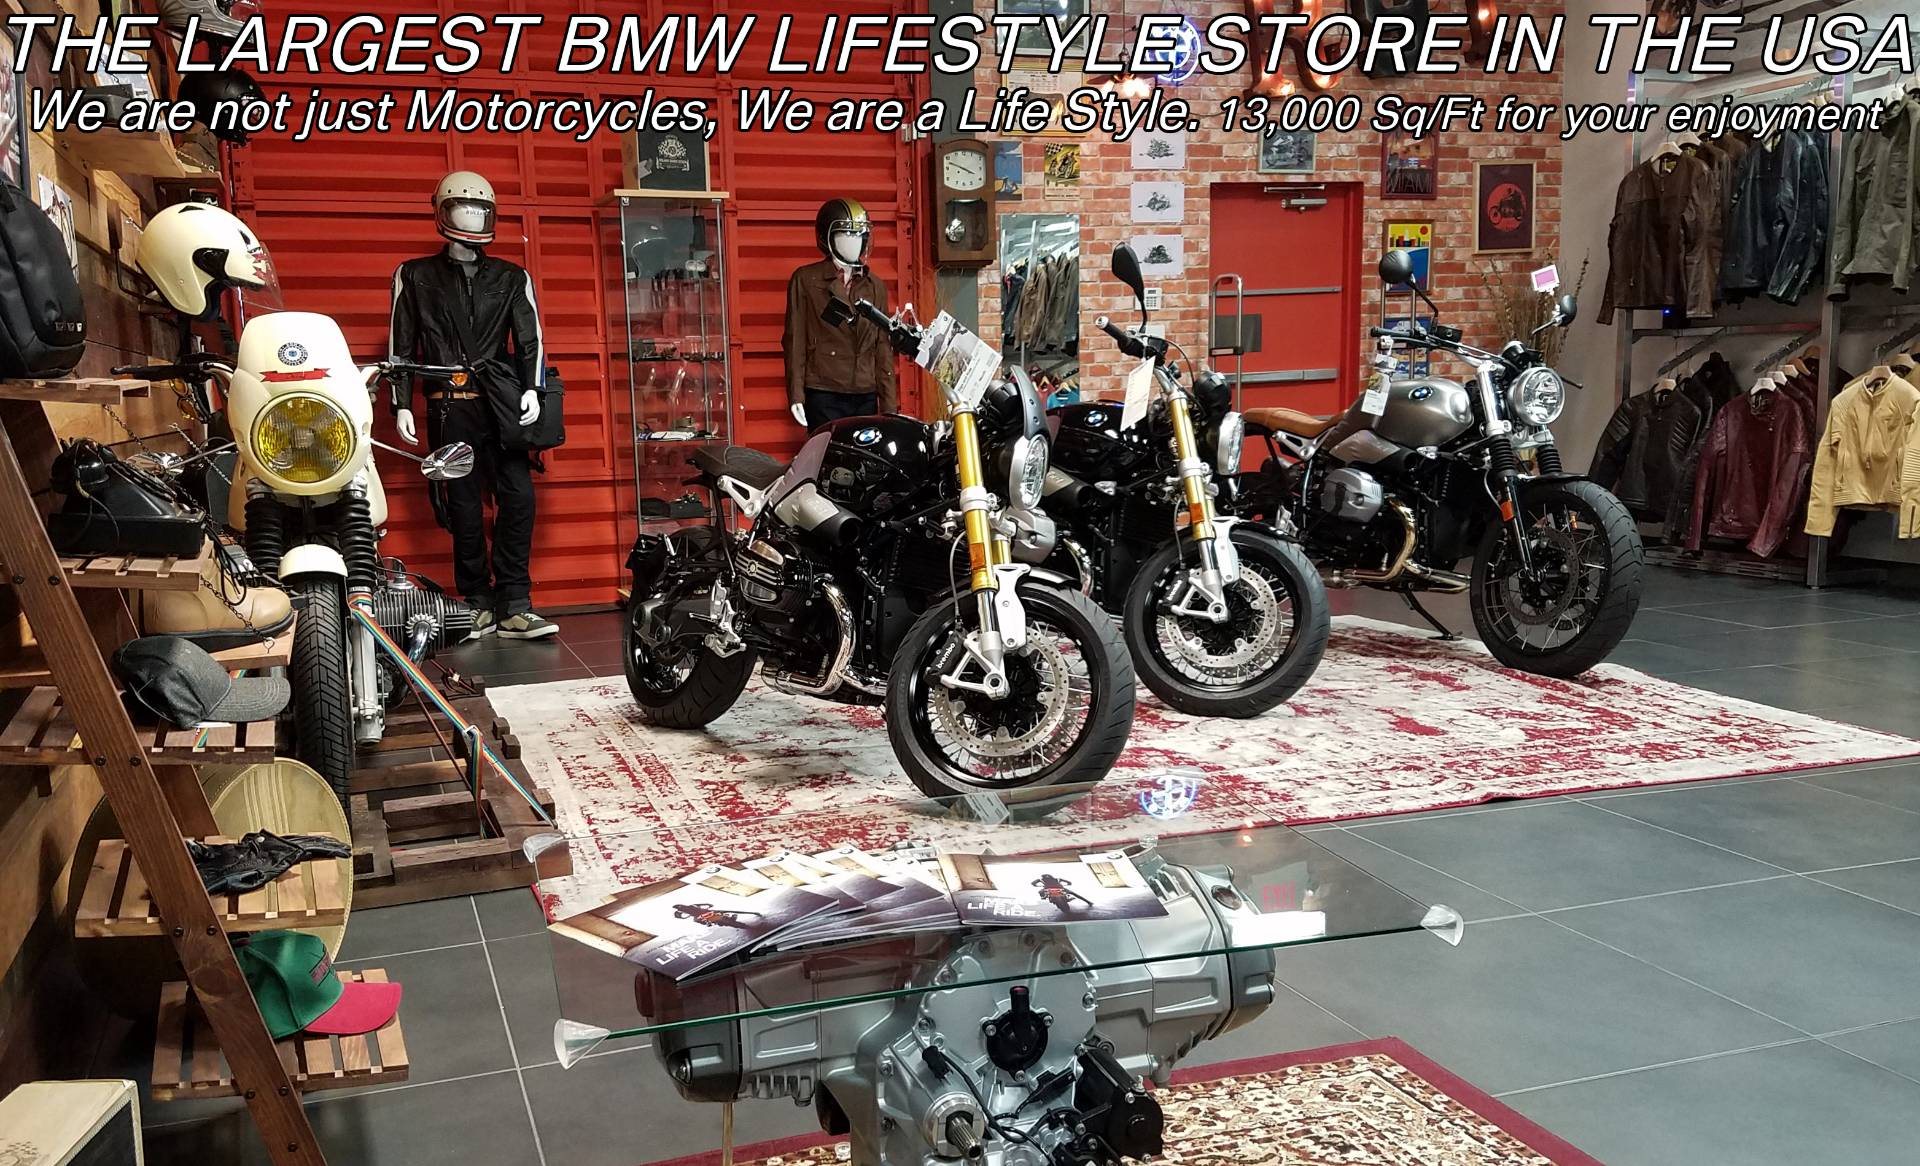 Used 2011 BMW R 1200 GSA For Sale, Pre owned BMW R 1200GSA For Sale, BMW Motorcycle R1200GSA, BMW Motorcycles of Miami, Motorcycles of Miami, Motorcycles Miami - Photo 30